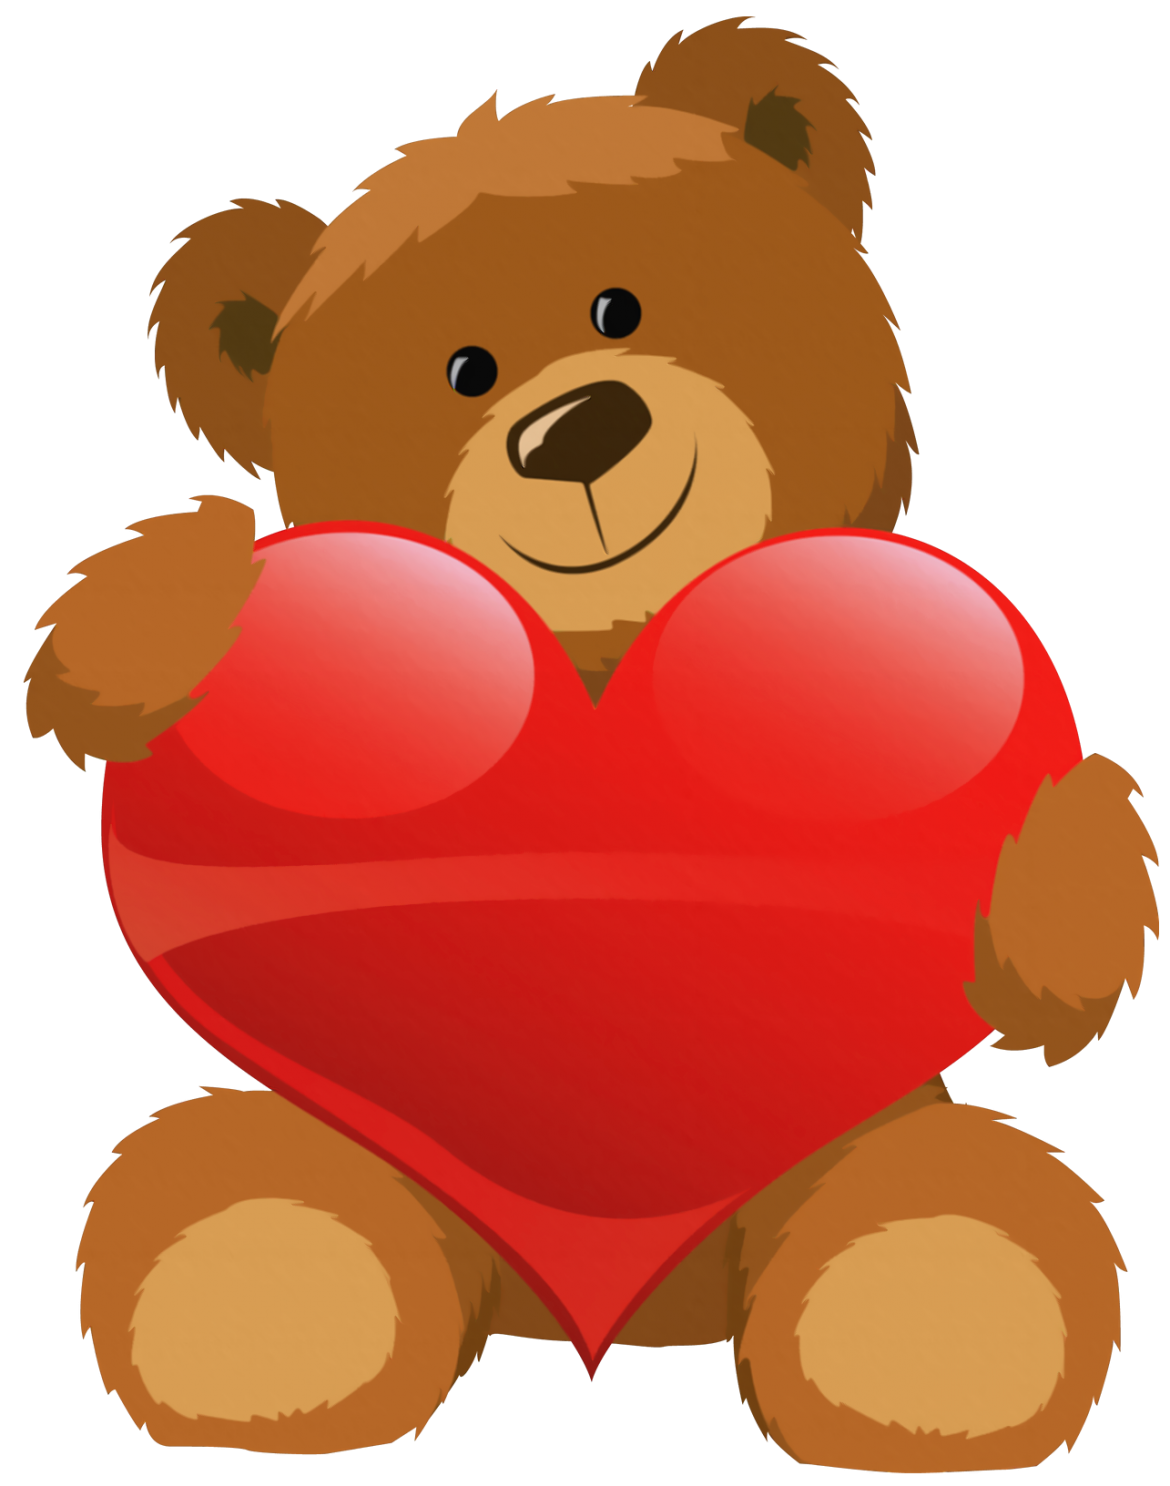 royalty free Grizzly bear clipart. Cute with heart png